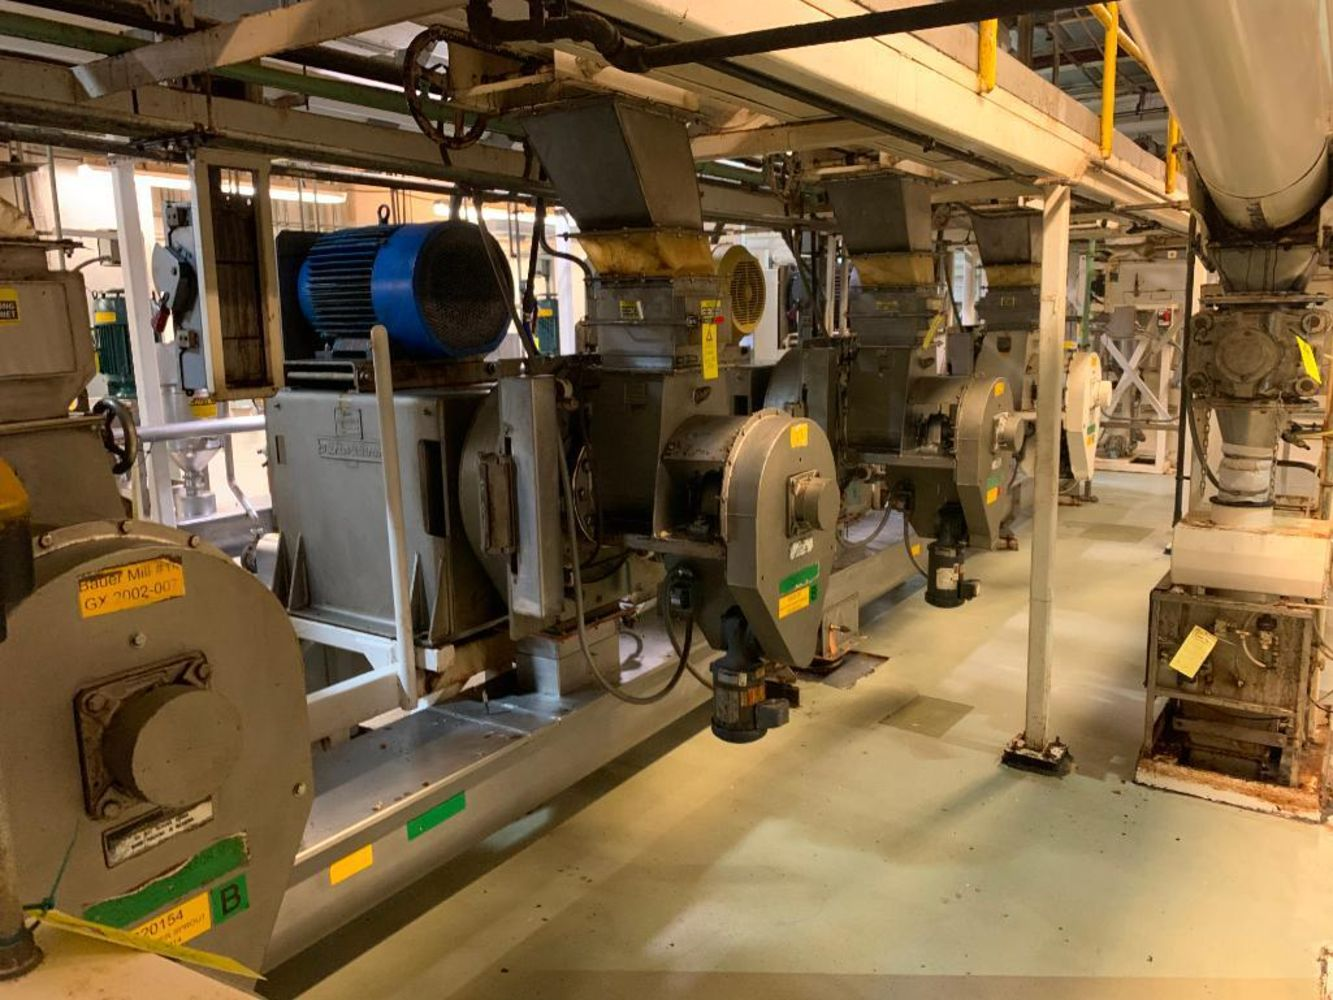 Day 1 - Complete Plant Closure Of Peanut Butter Plant - All processing equipment